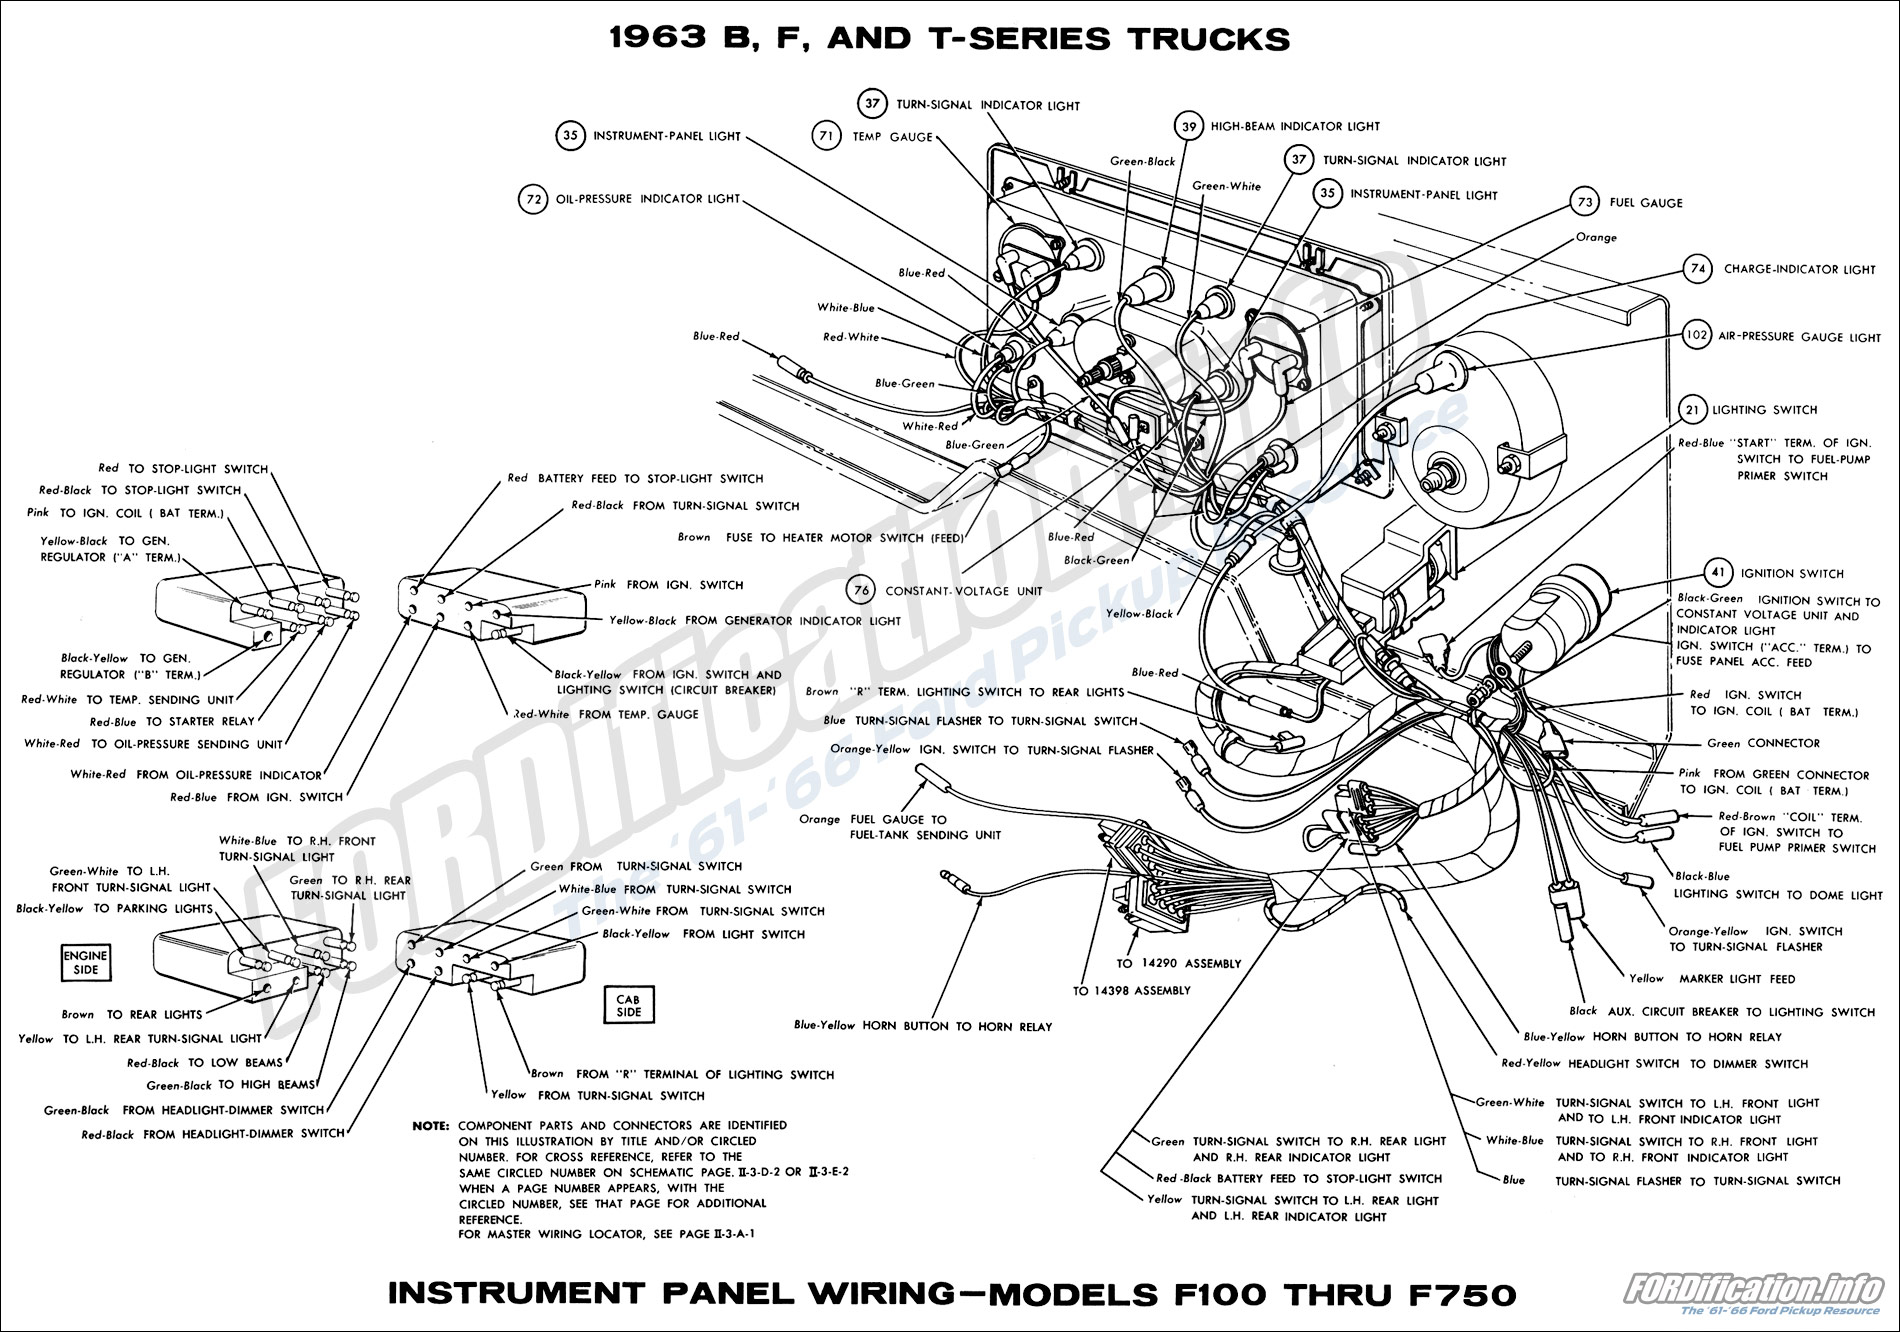 61 Ford Truck Wiring Layout Diagrams 1963 Chrysler Diagram F100 Signal 31 Images 68 62